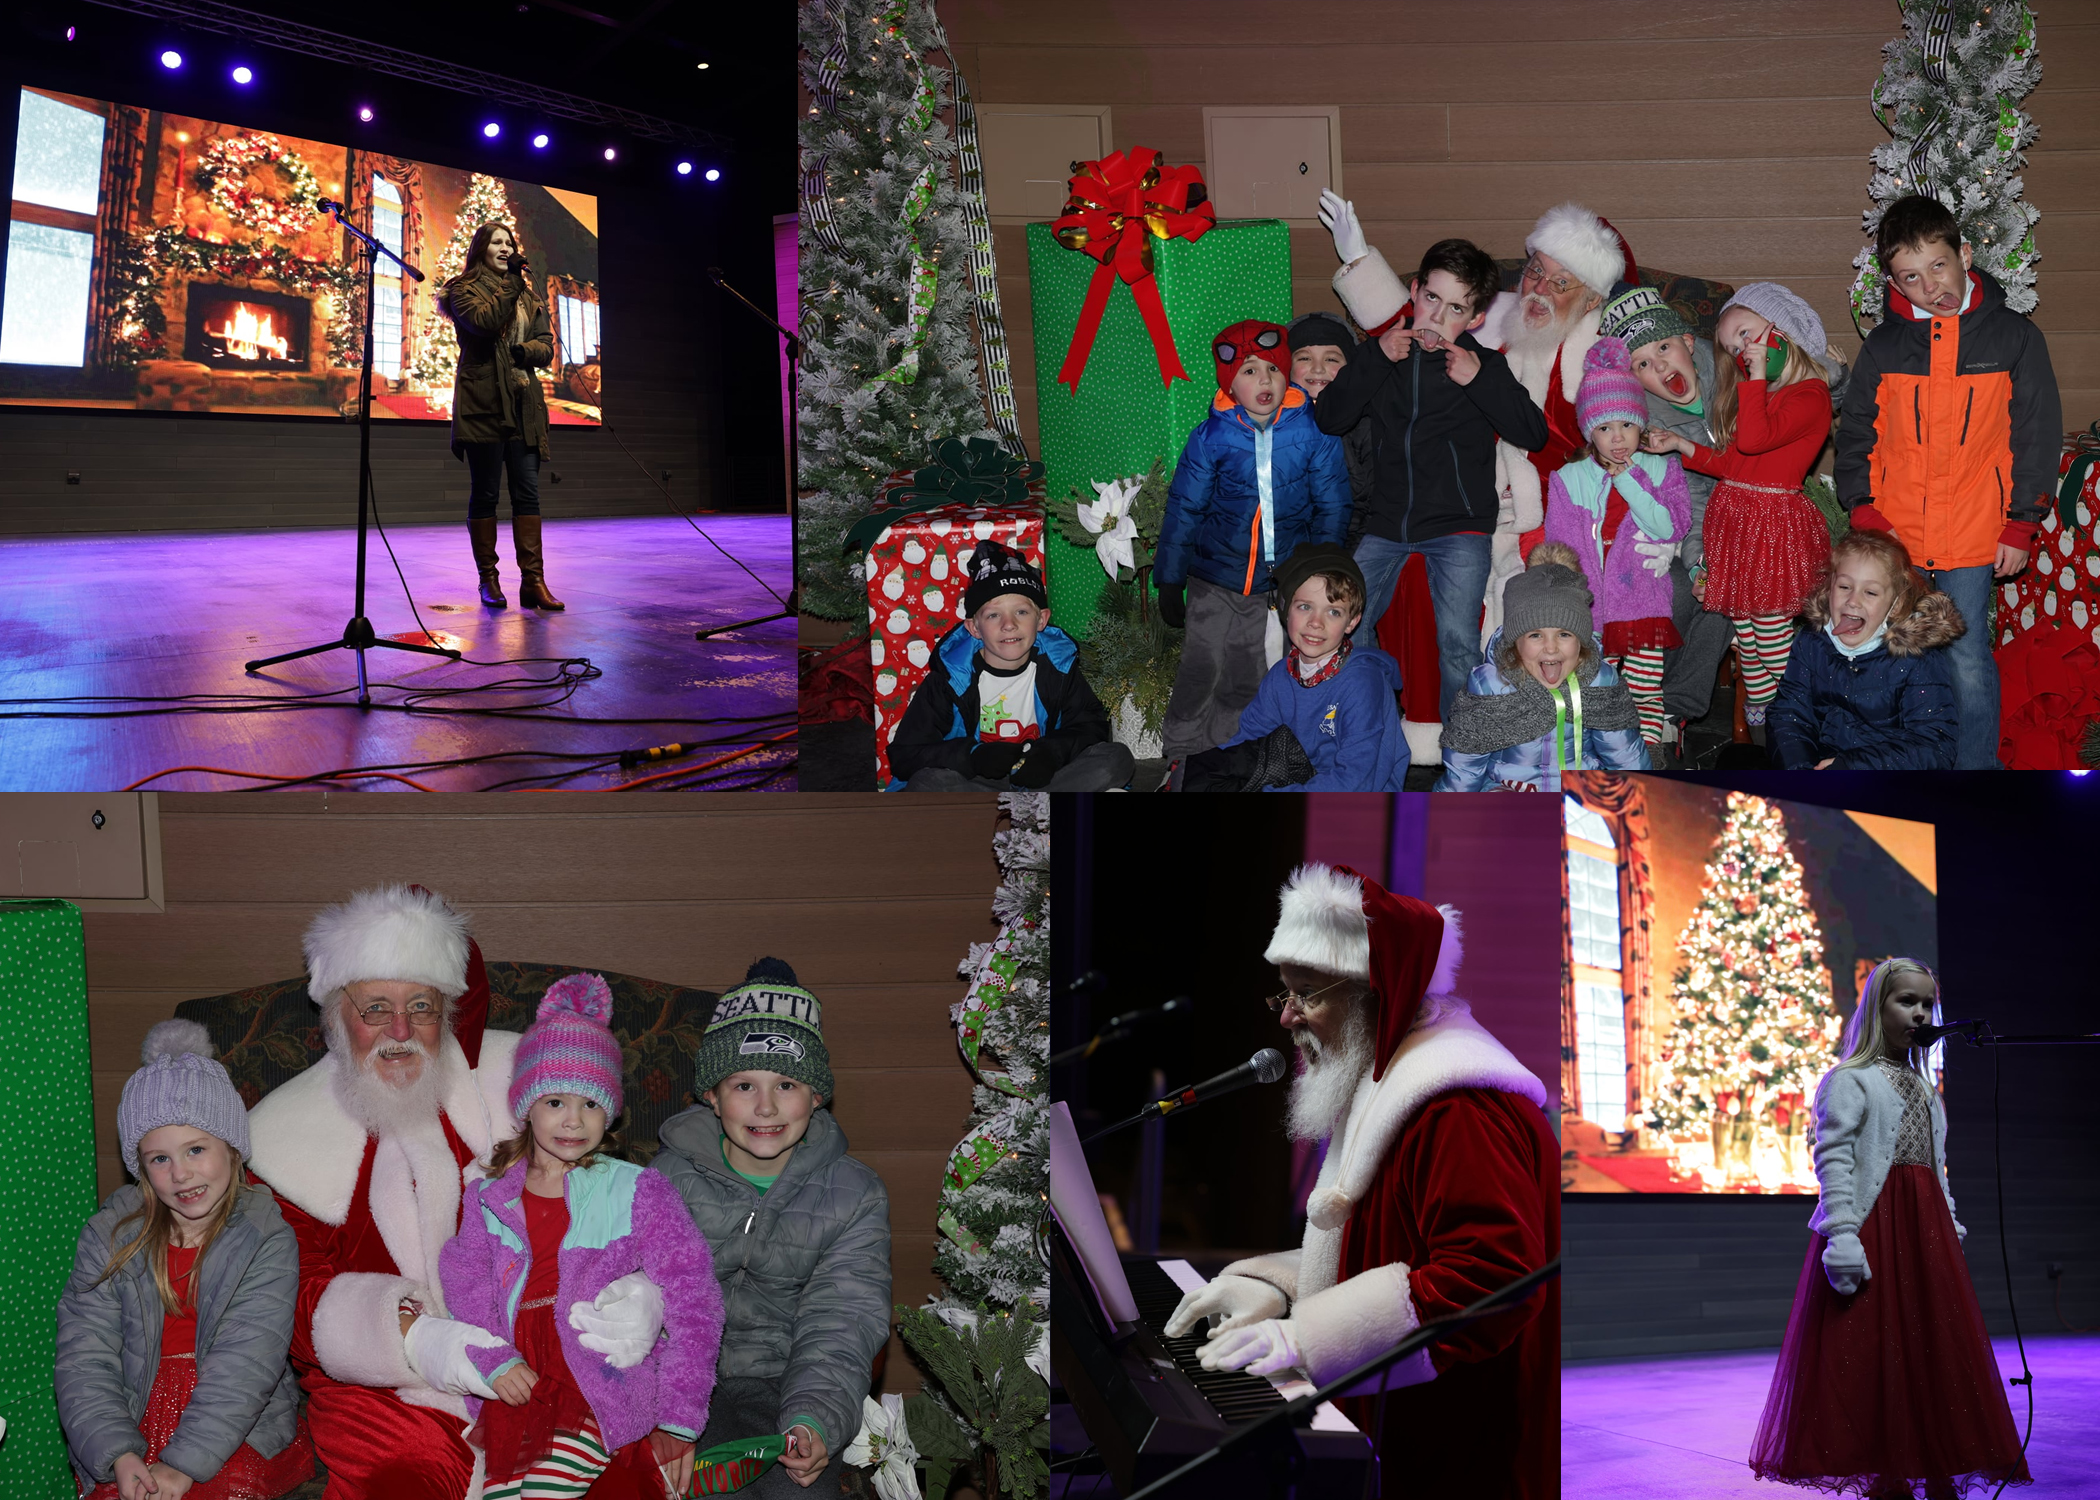 'Don't You Just Love Christmas' free Christmas event continues on Trussville's downtown stage